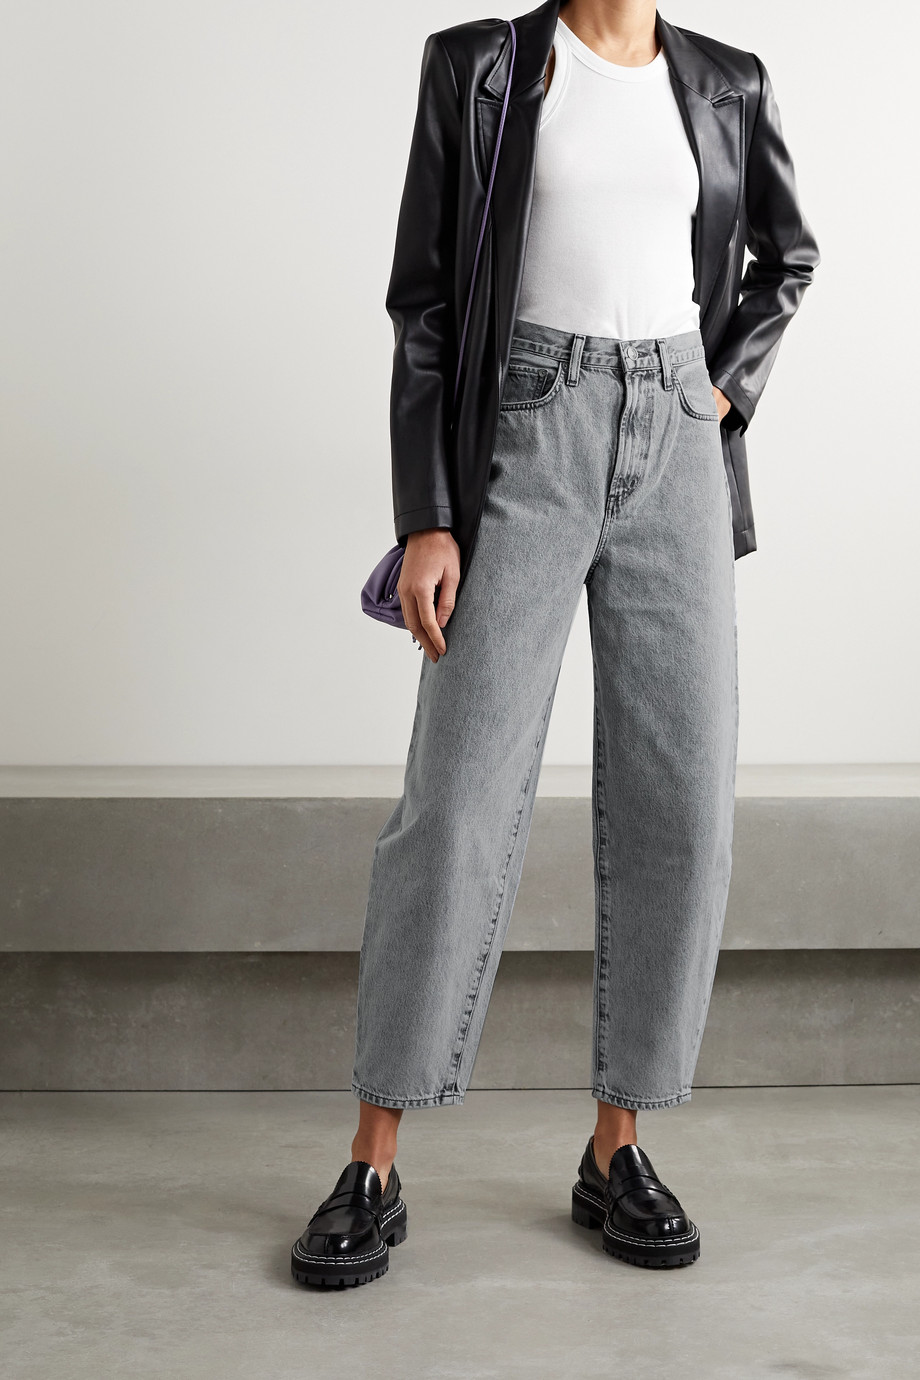 AGOLDE + NET SUSTAIN Balloon high-rise tapered jeans